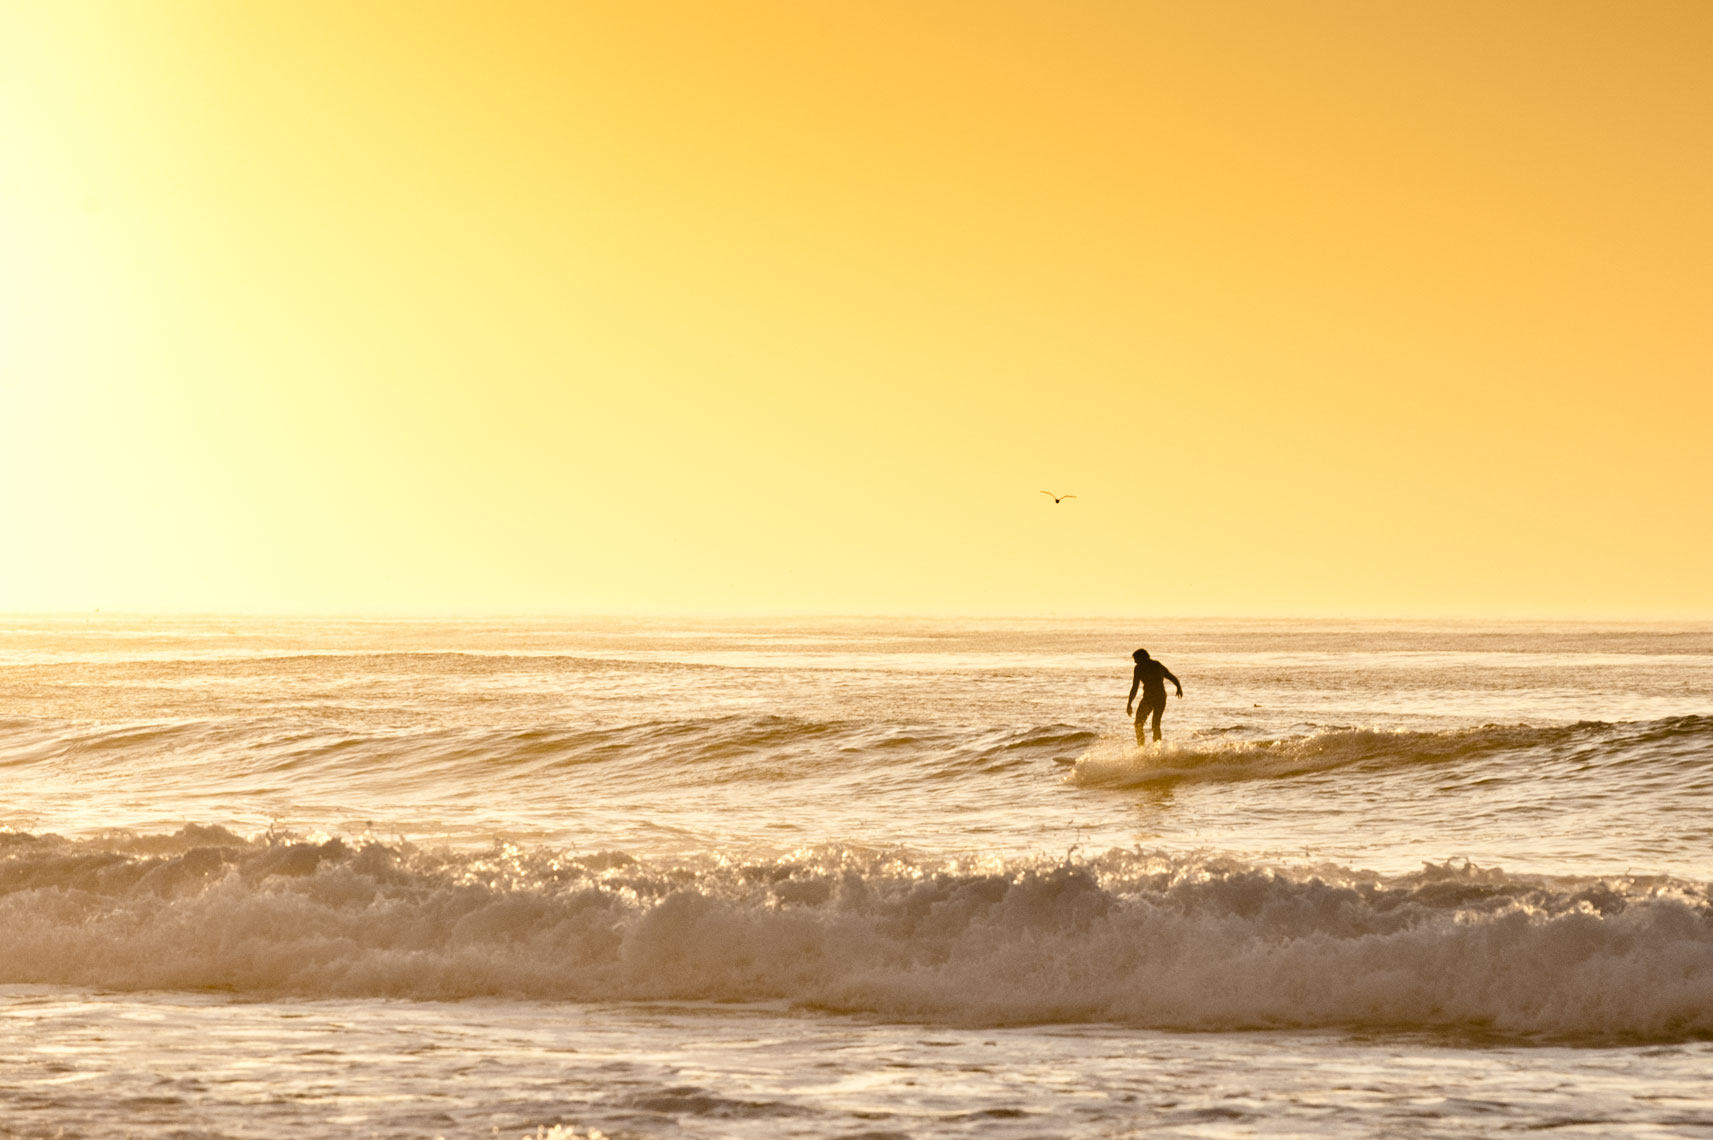 Surfer at Asilomar, by California landscape photographer Mike Morgan.